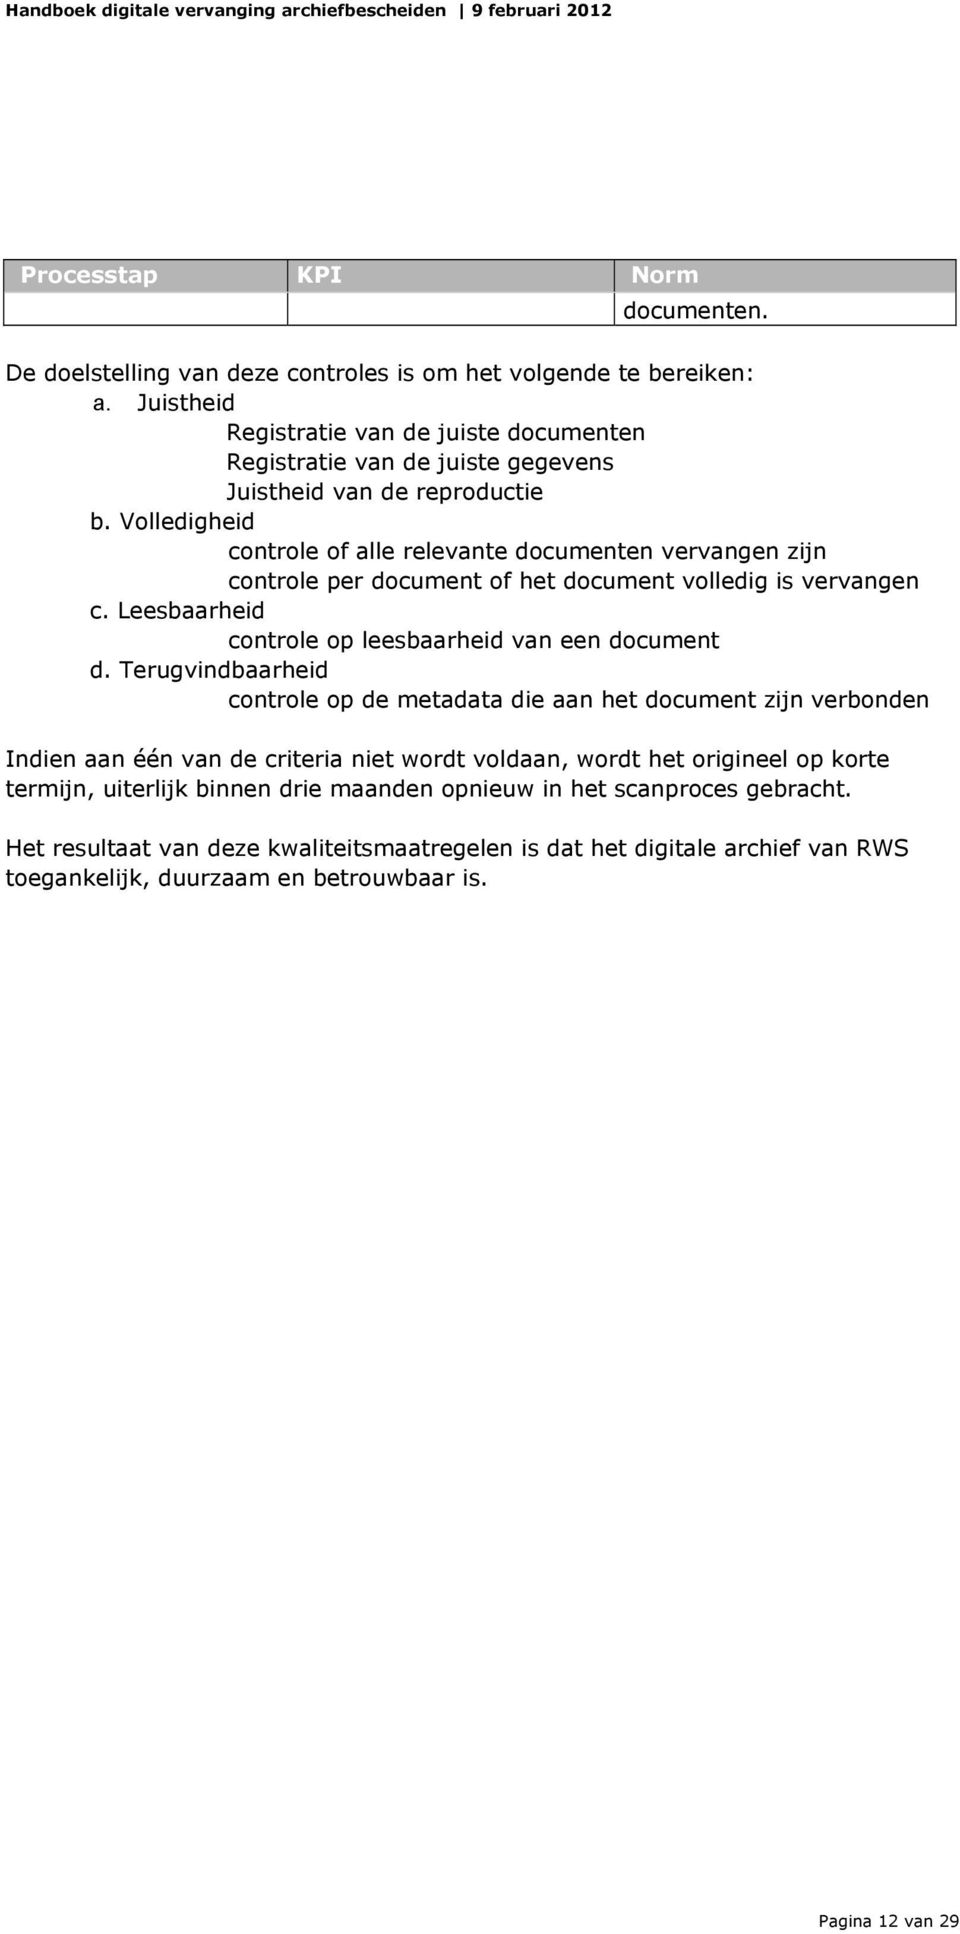 Volledigheid controle of alle relevante documenten vervangen zijn controle per document of het document volledig is vervangen c. Leesbaarheid controle op leesbaarheid van een document d.